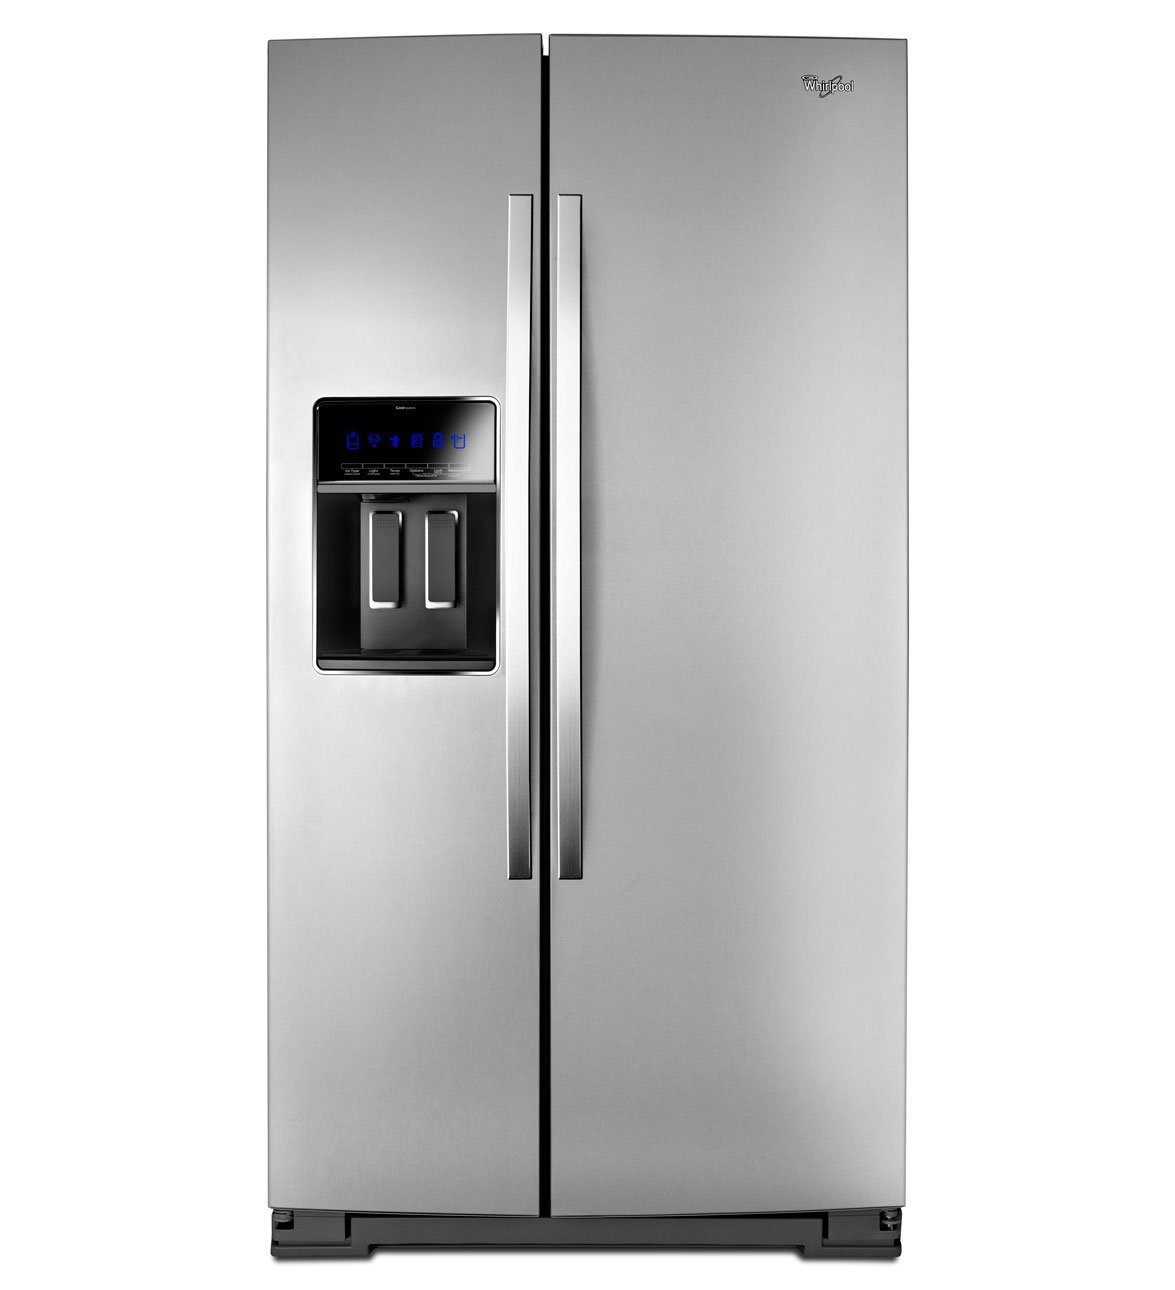 Kitchenaid French Door Refrigerator 5 Best Whirlpool Side By Side Refrigerator | Tool Box